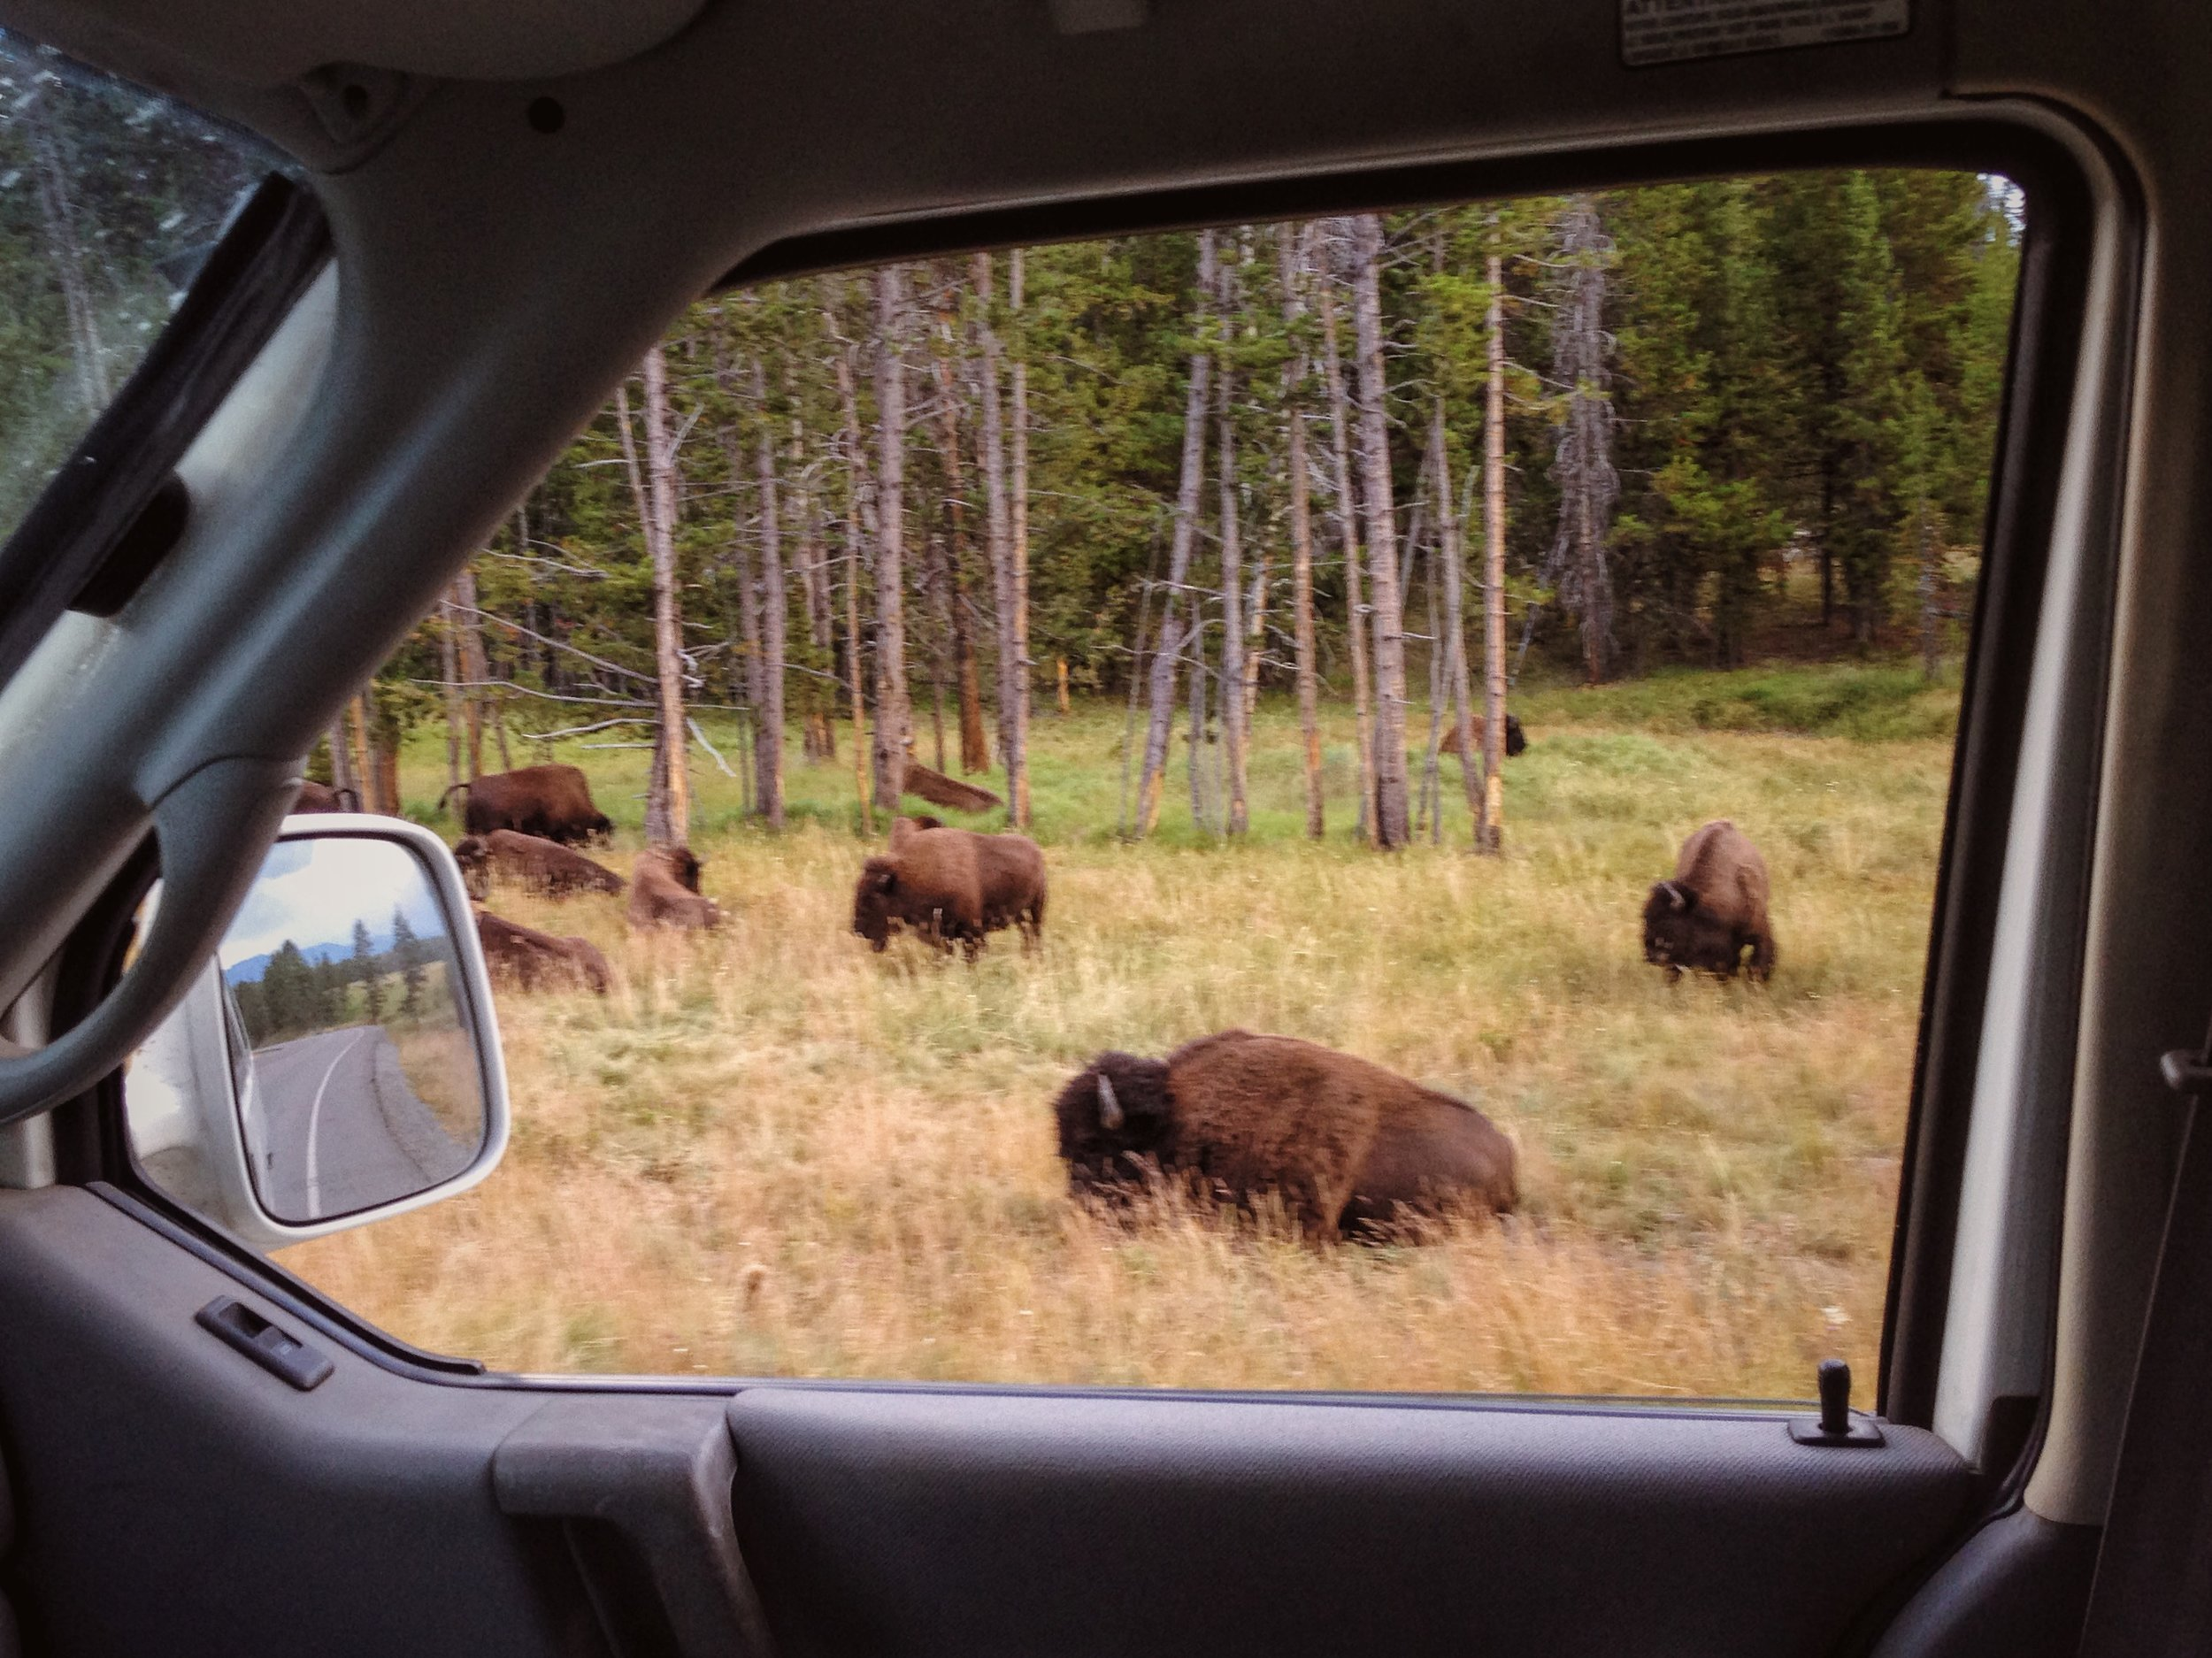 Bison on the side of the road in Yellowstone